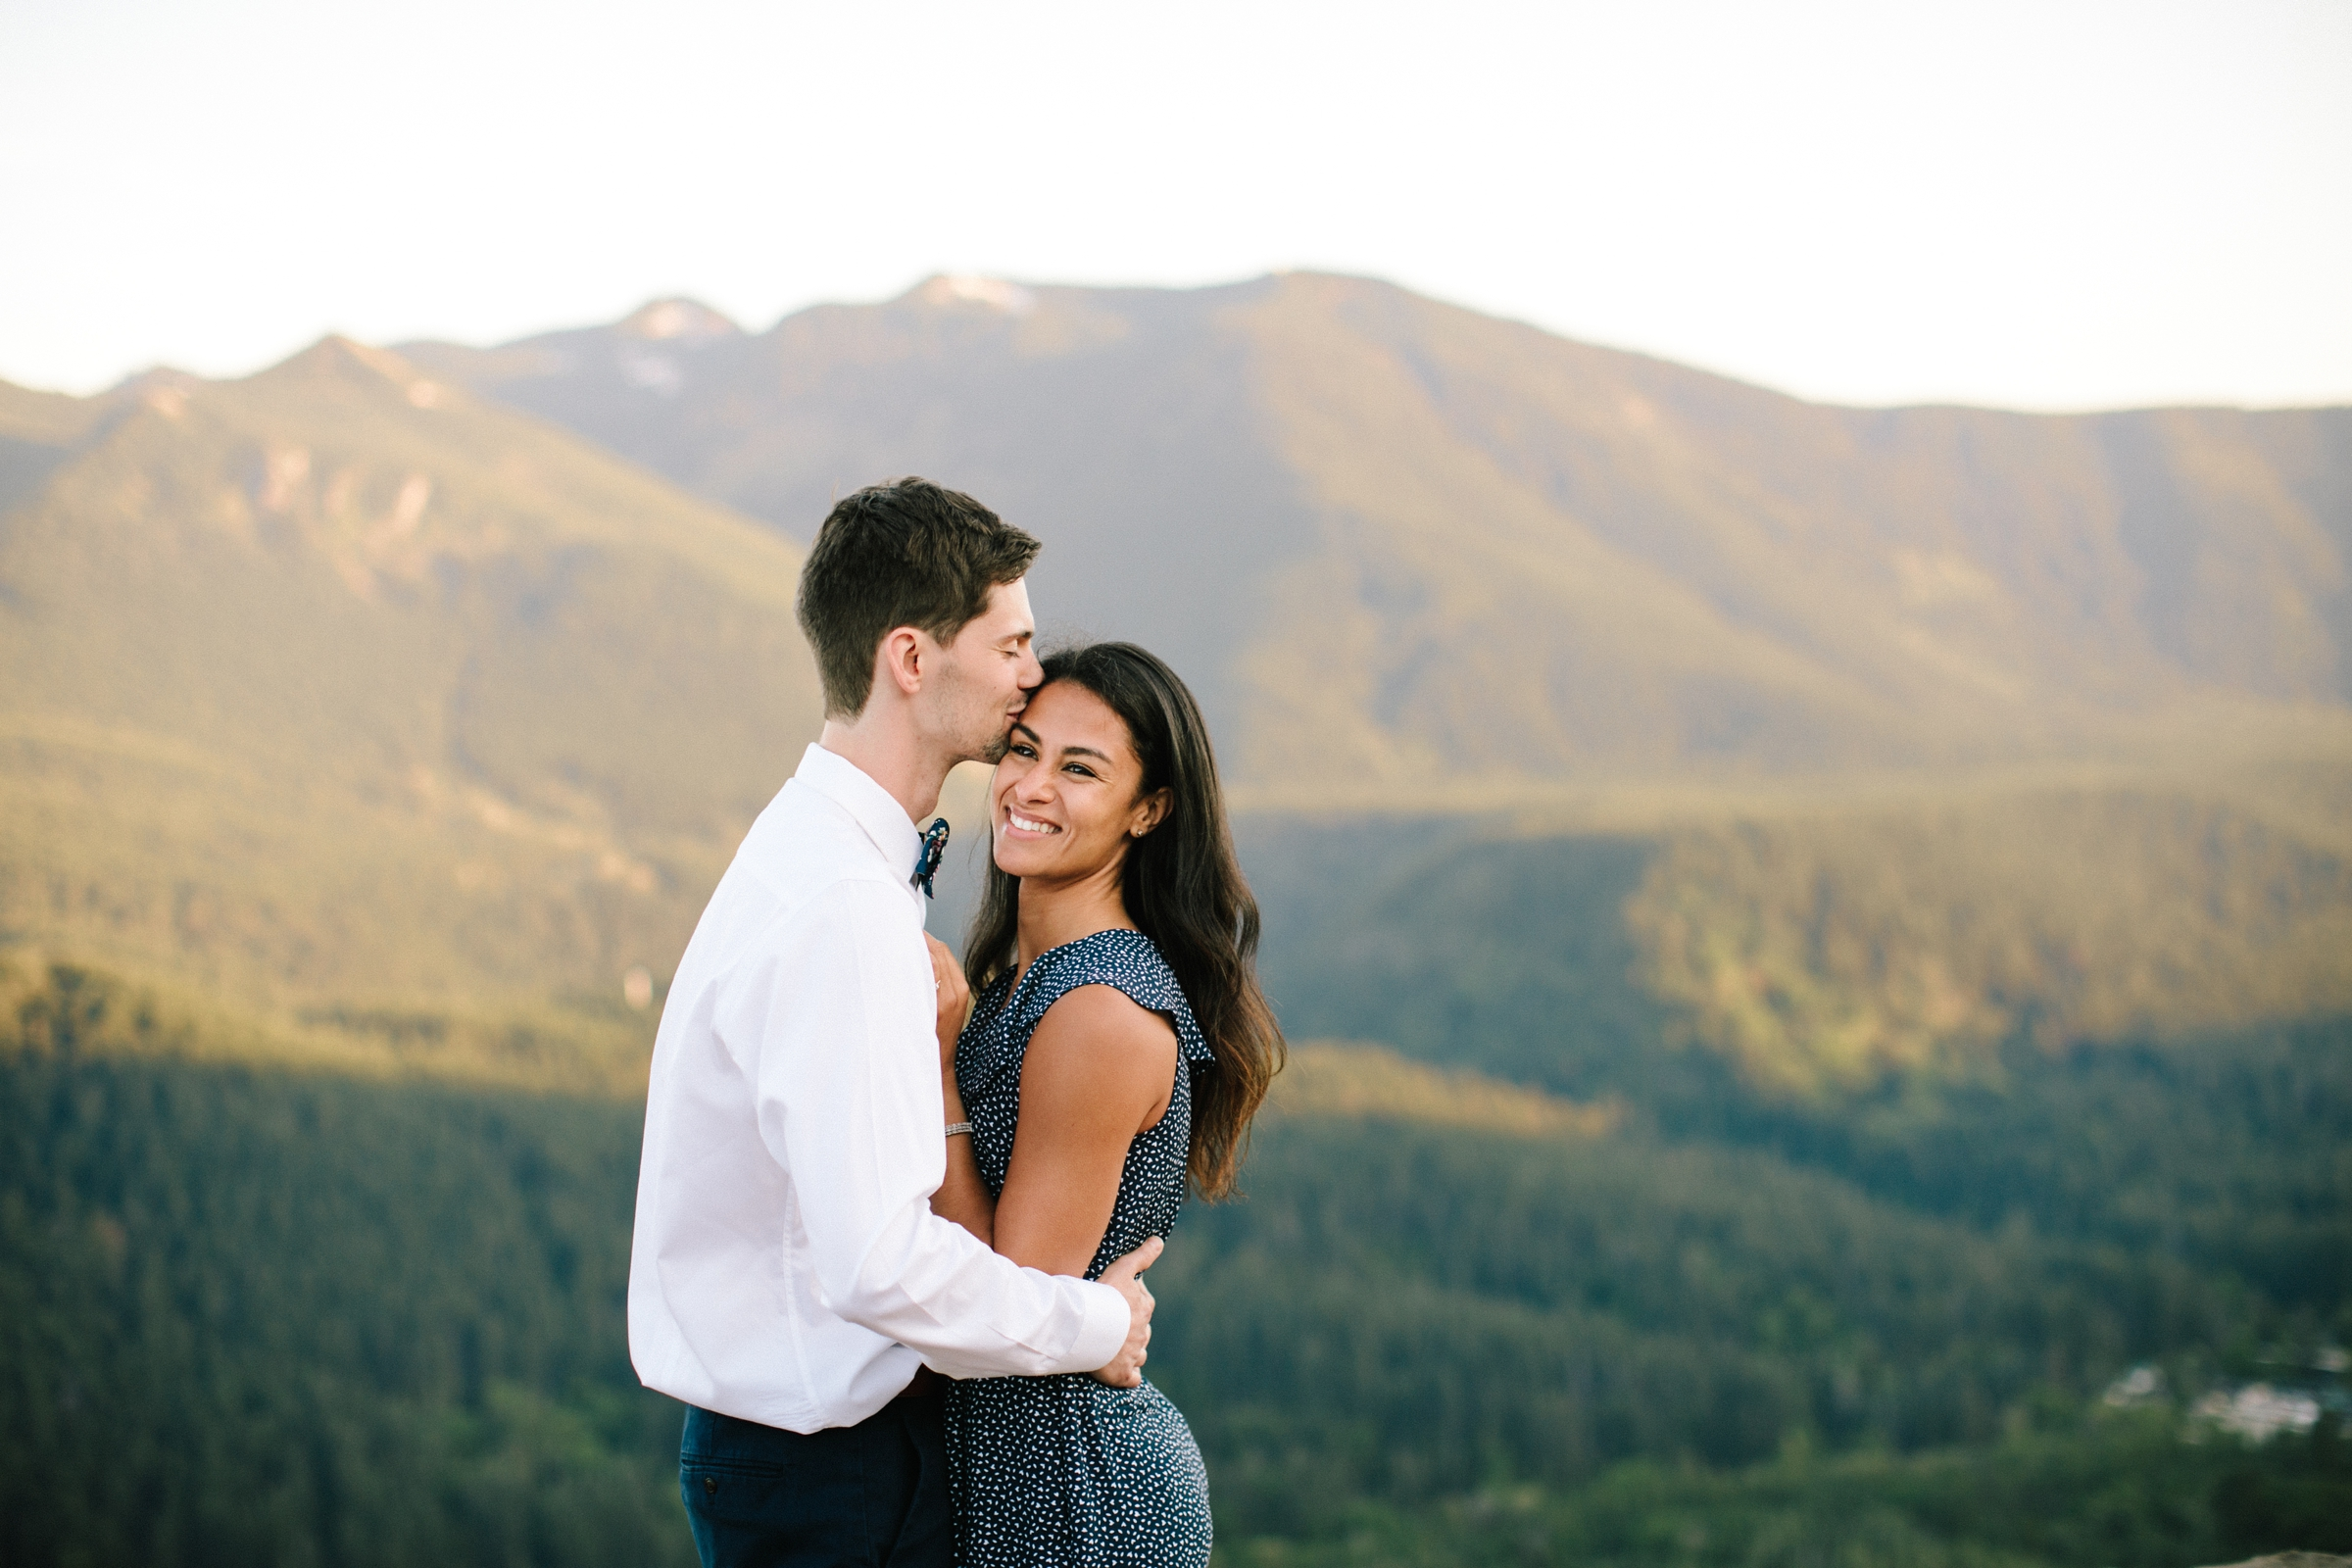 adventure-mountain-top-elopement-photographer-pnw-seattle-washington-wedding-engagement-hike-photography-catie-bergman_0021.jpg